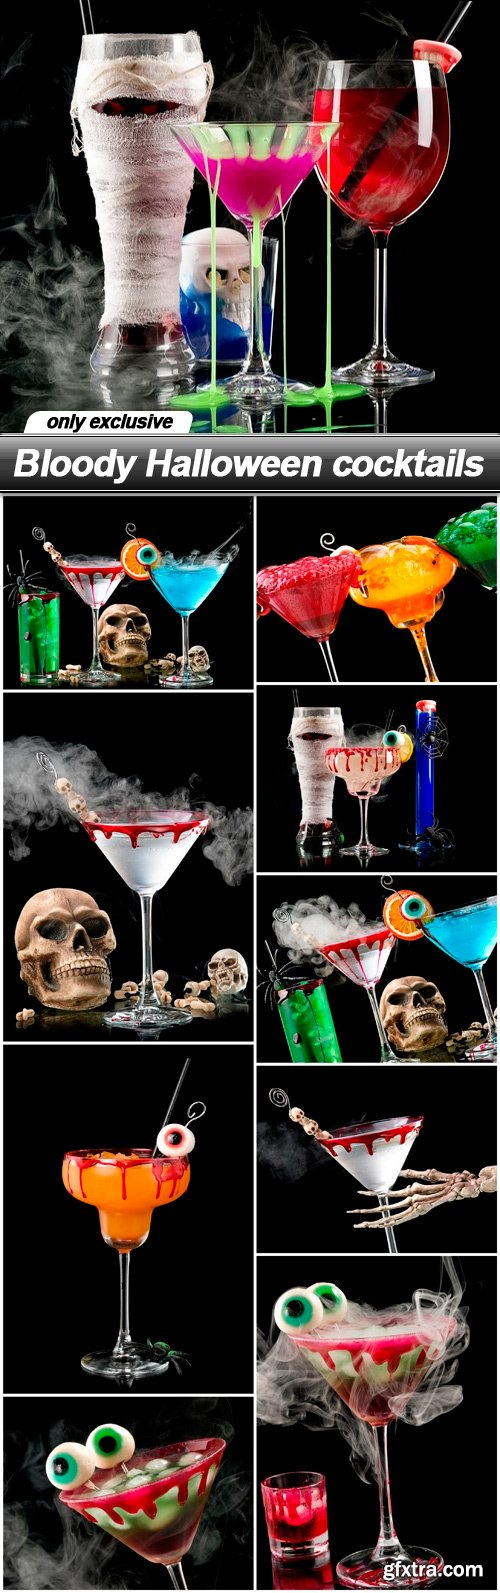 Bloody Halloween cocktails - 10 UHQ JPEG